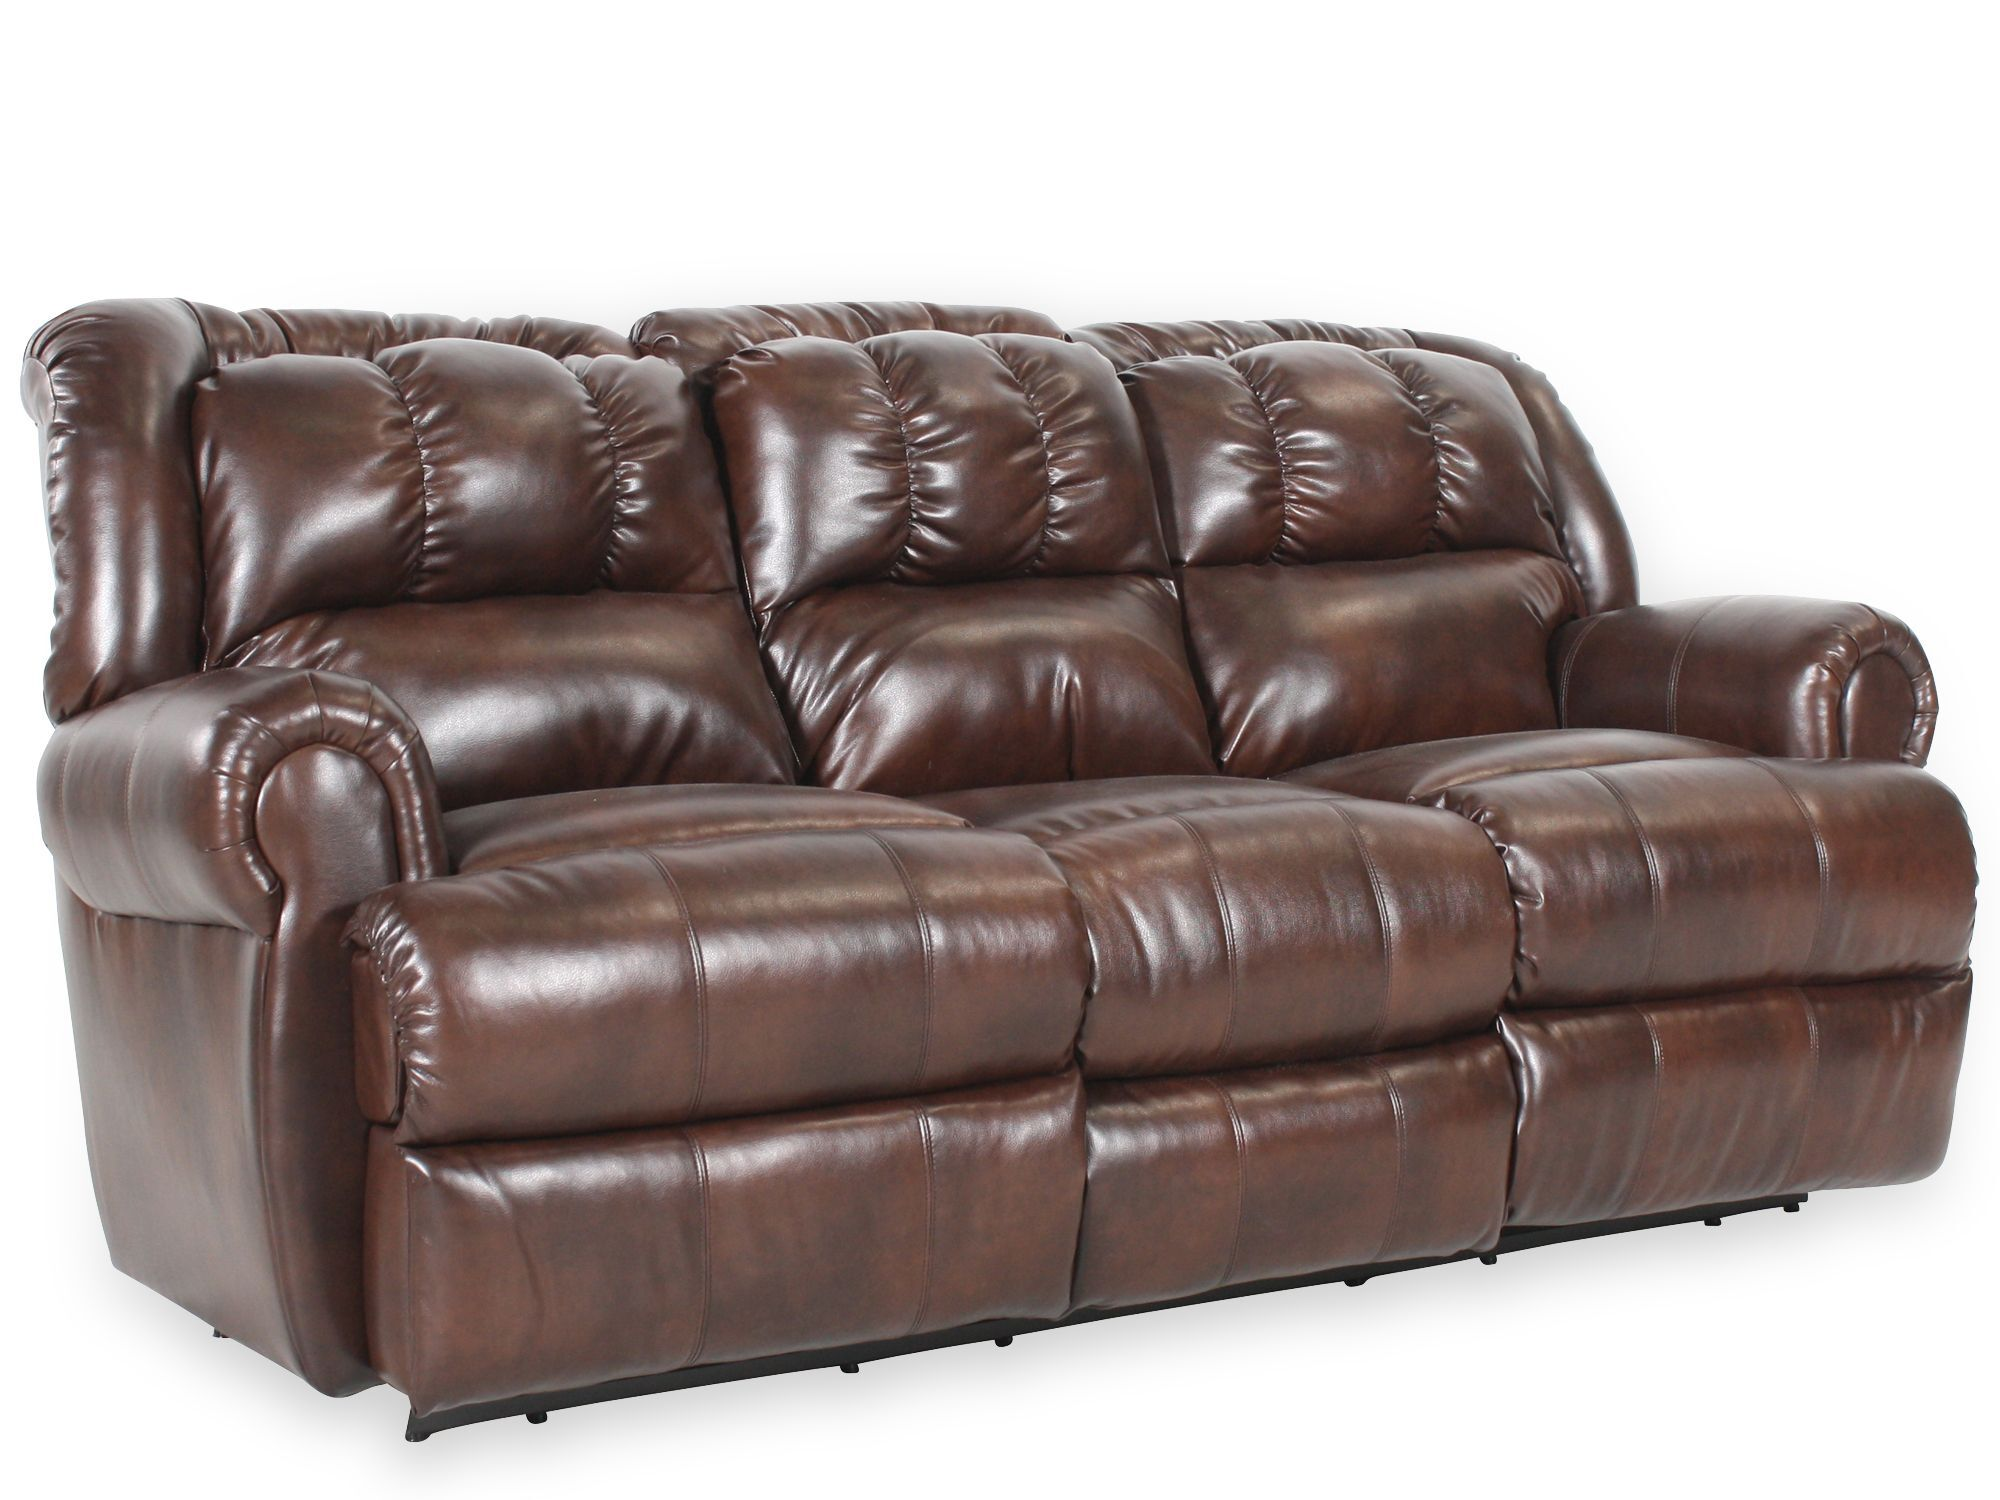 Tufted 88 Reclining Sofa With Drop Down Table